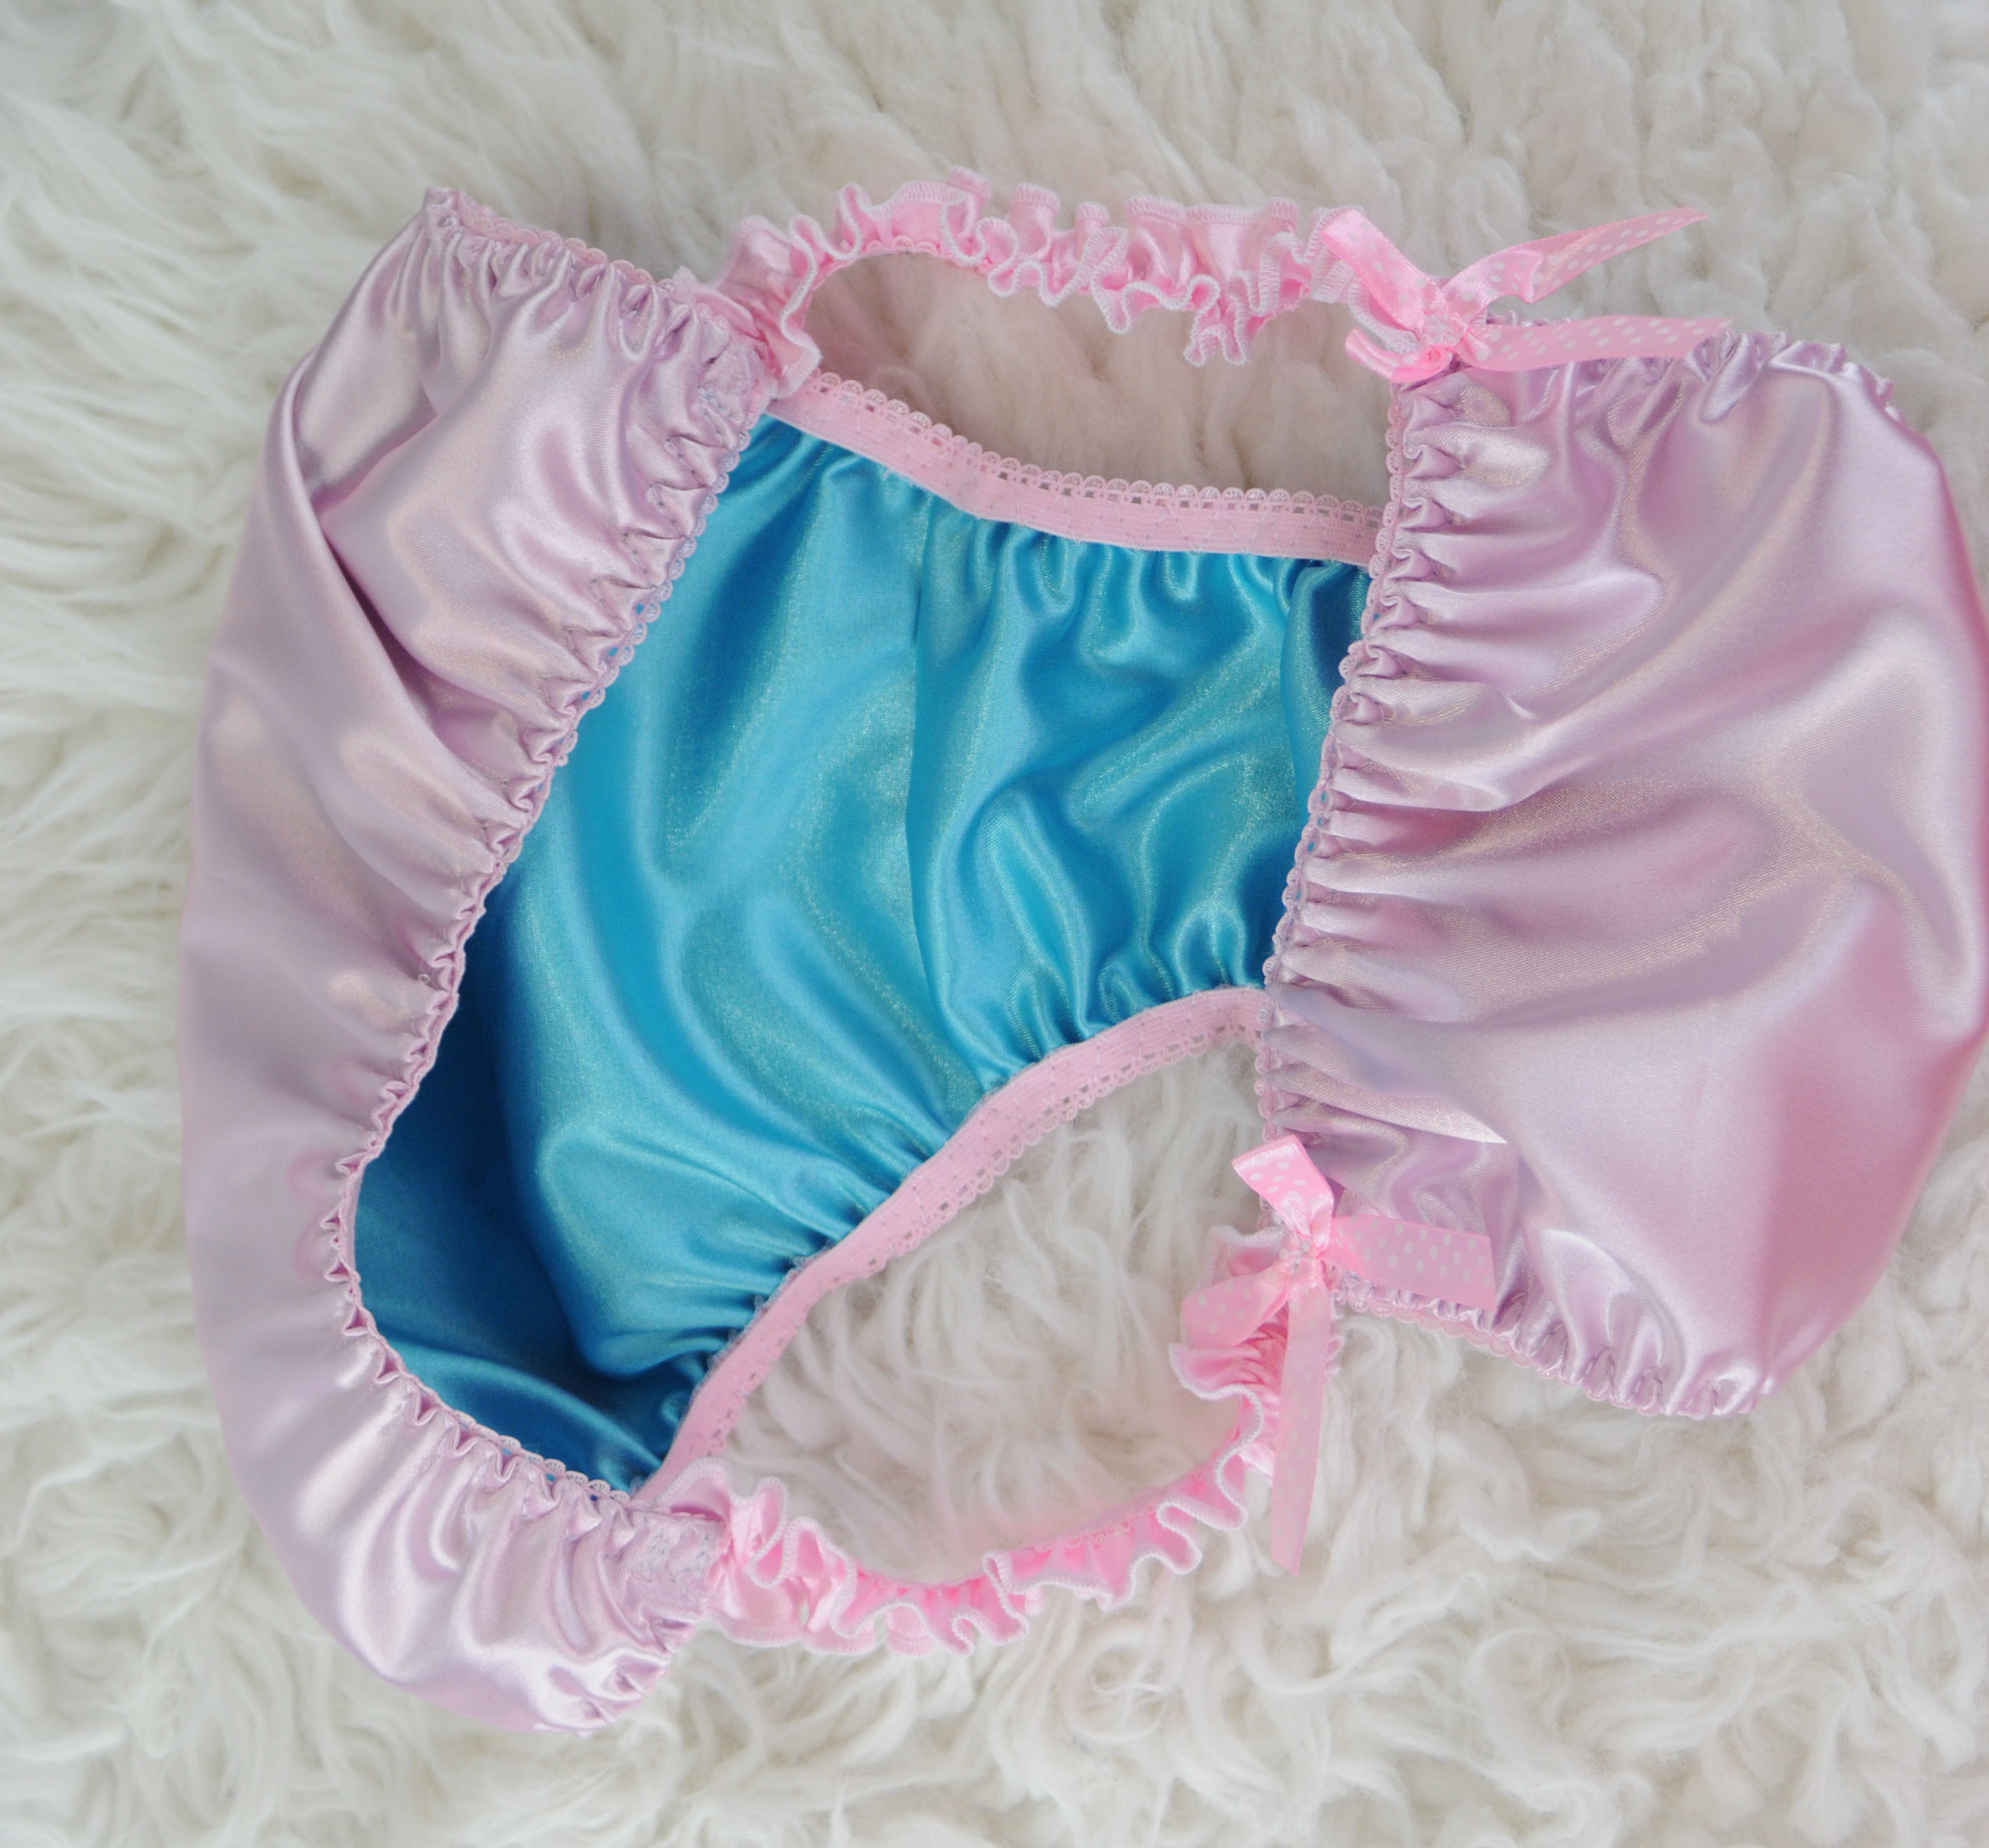 Exclusive Ania's Poison MANties Silky Smooth, Butter Soft Double Lined Pink Blue Limited Edition bikini panties like Joe the Boxer for Sissy MEN!